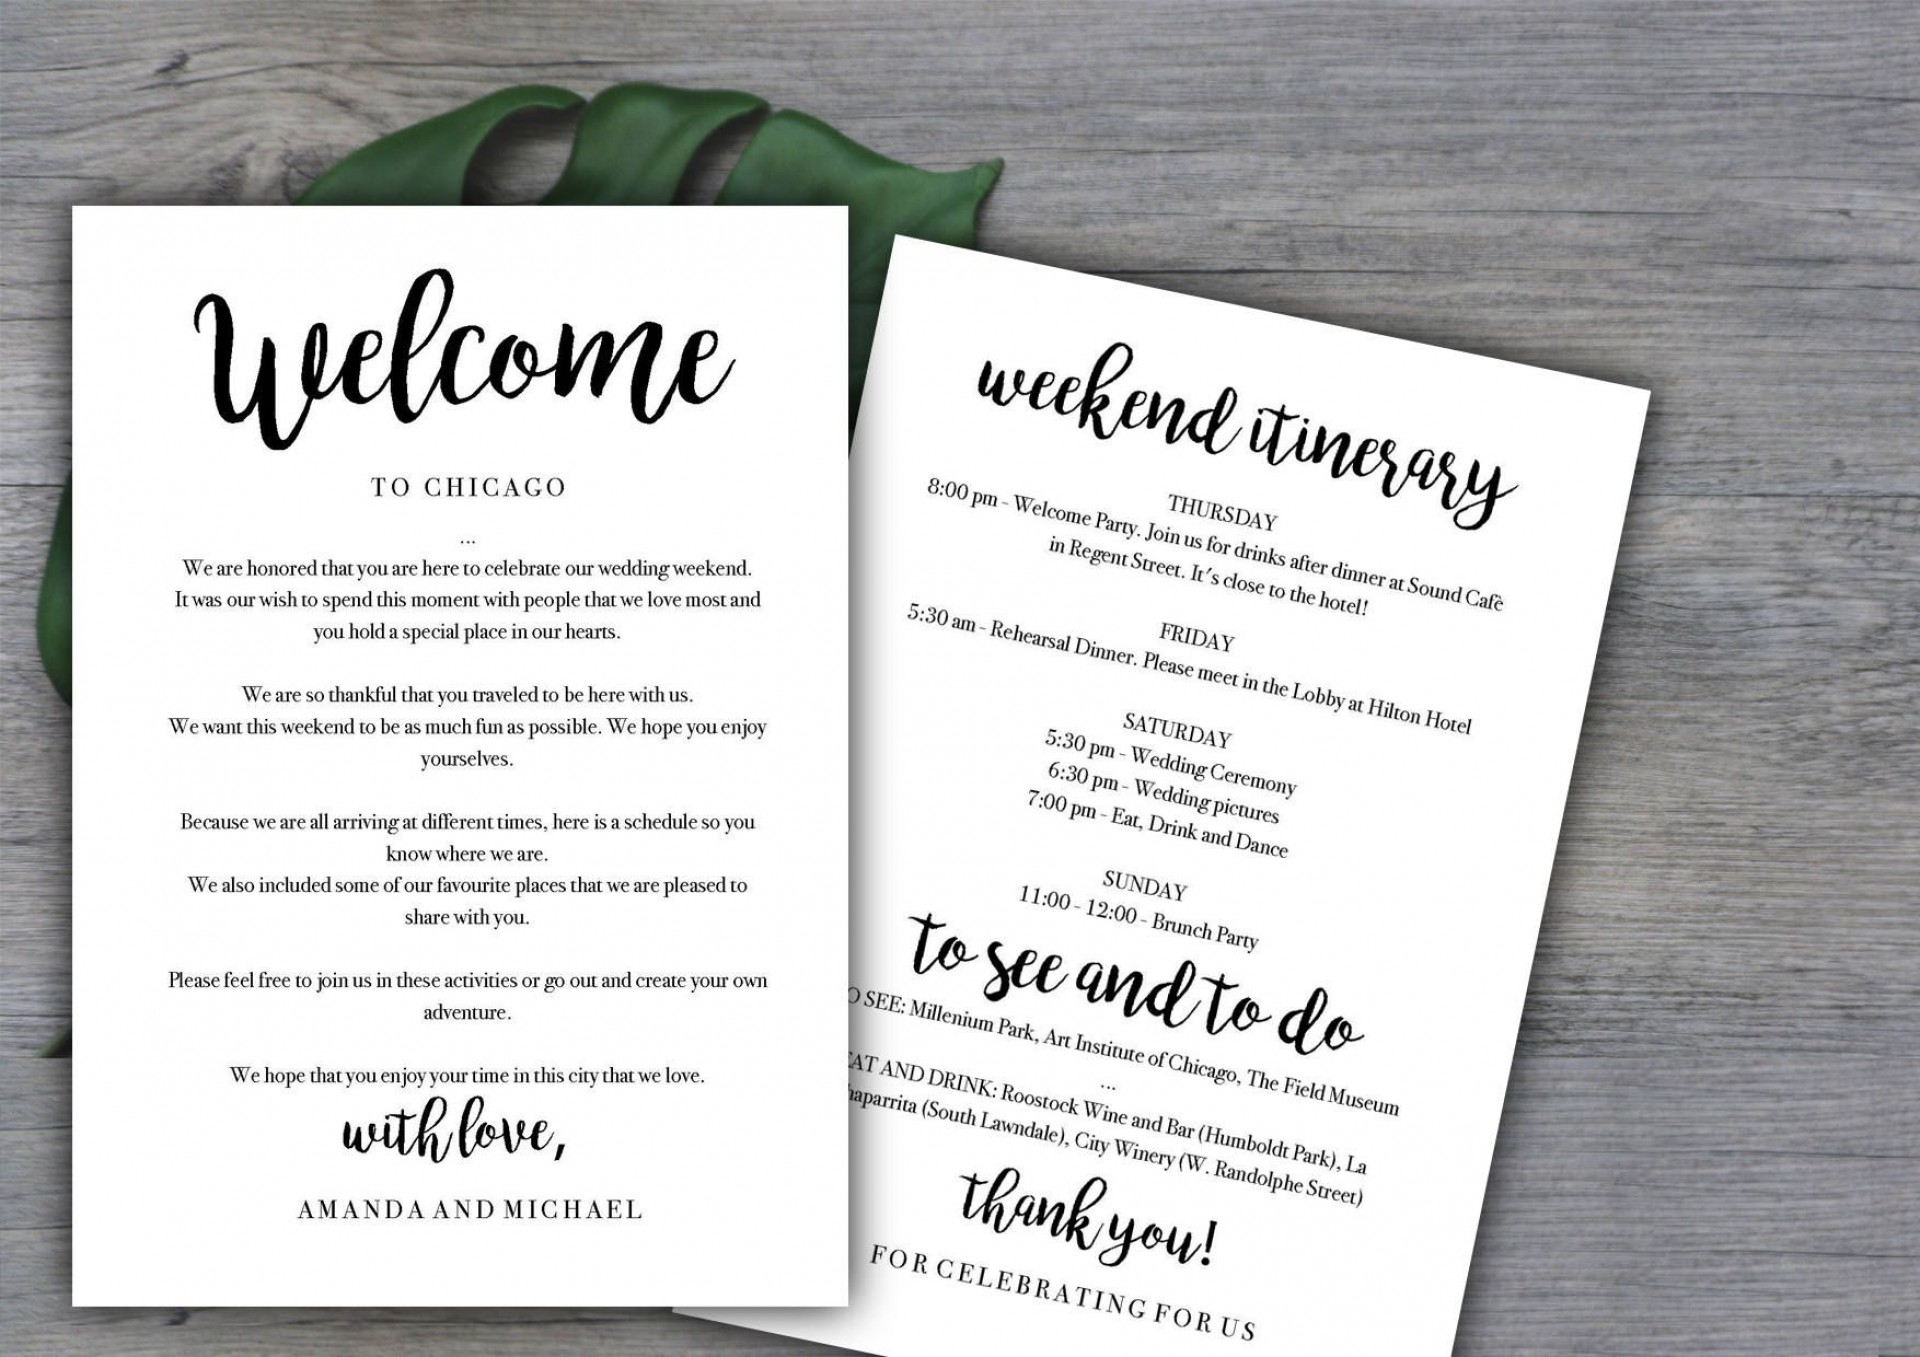 008 Formidable Destination Wedding Welcome Letter And Itinerary Template Highest Clarity 1920